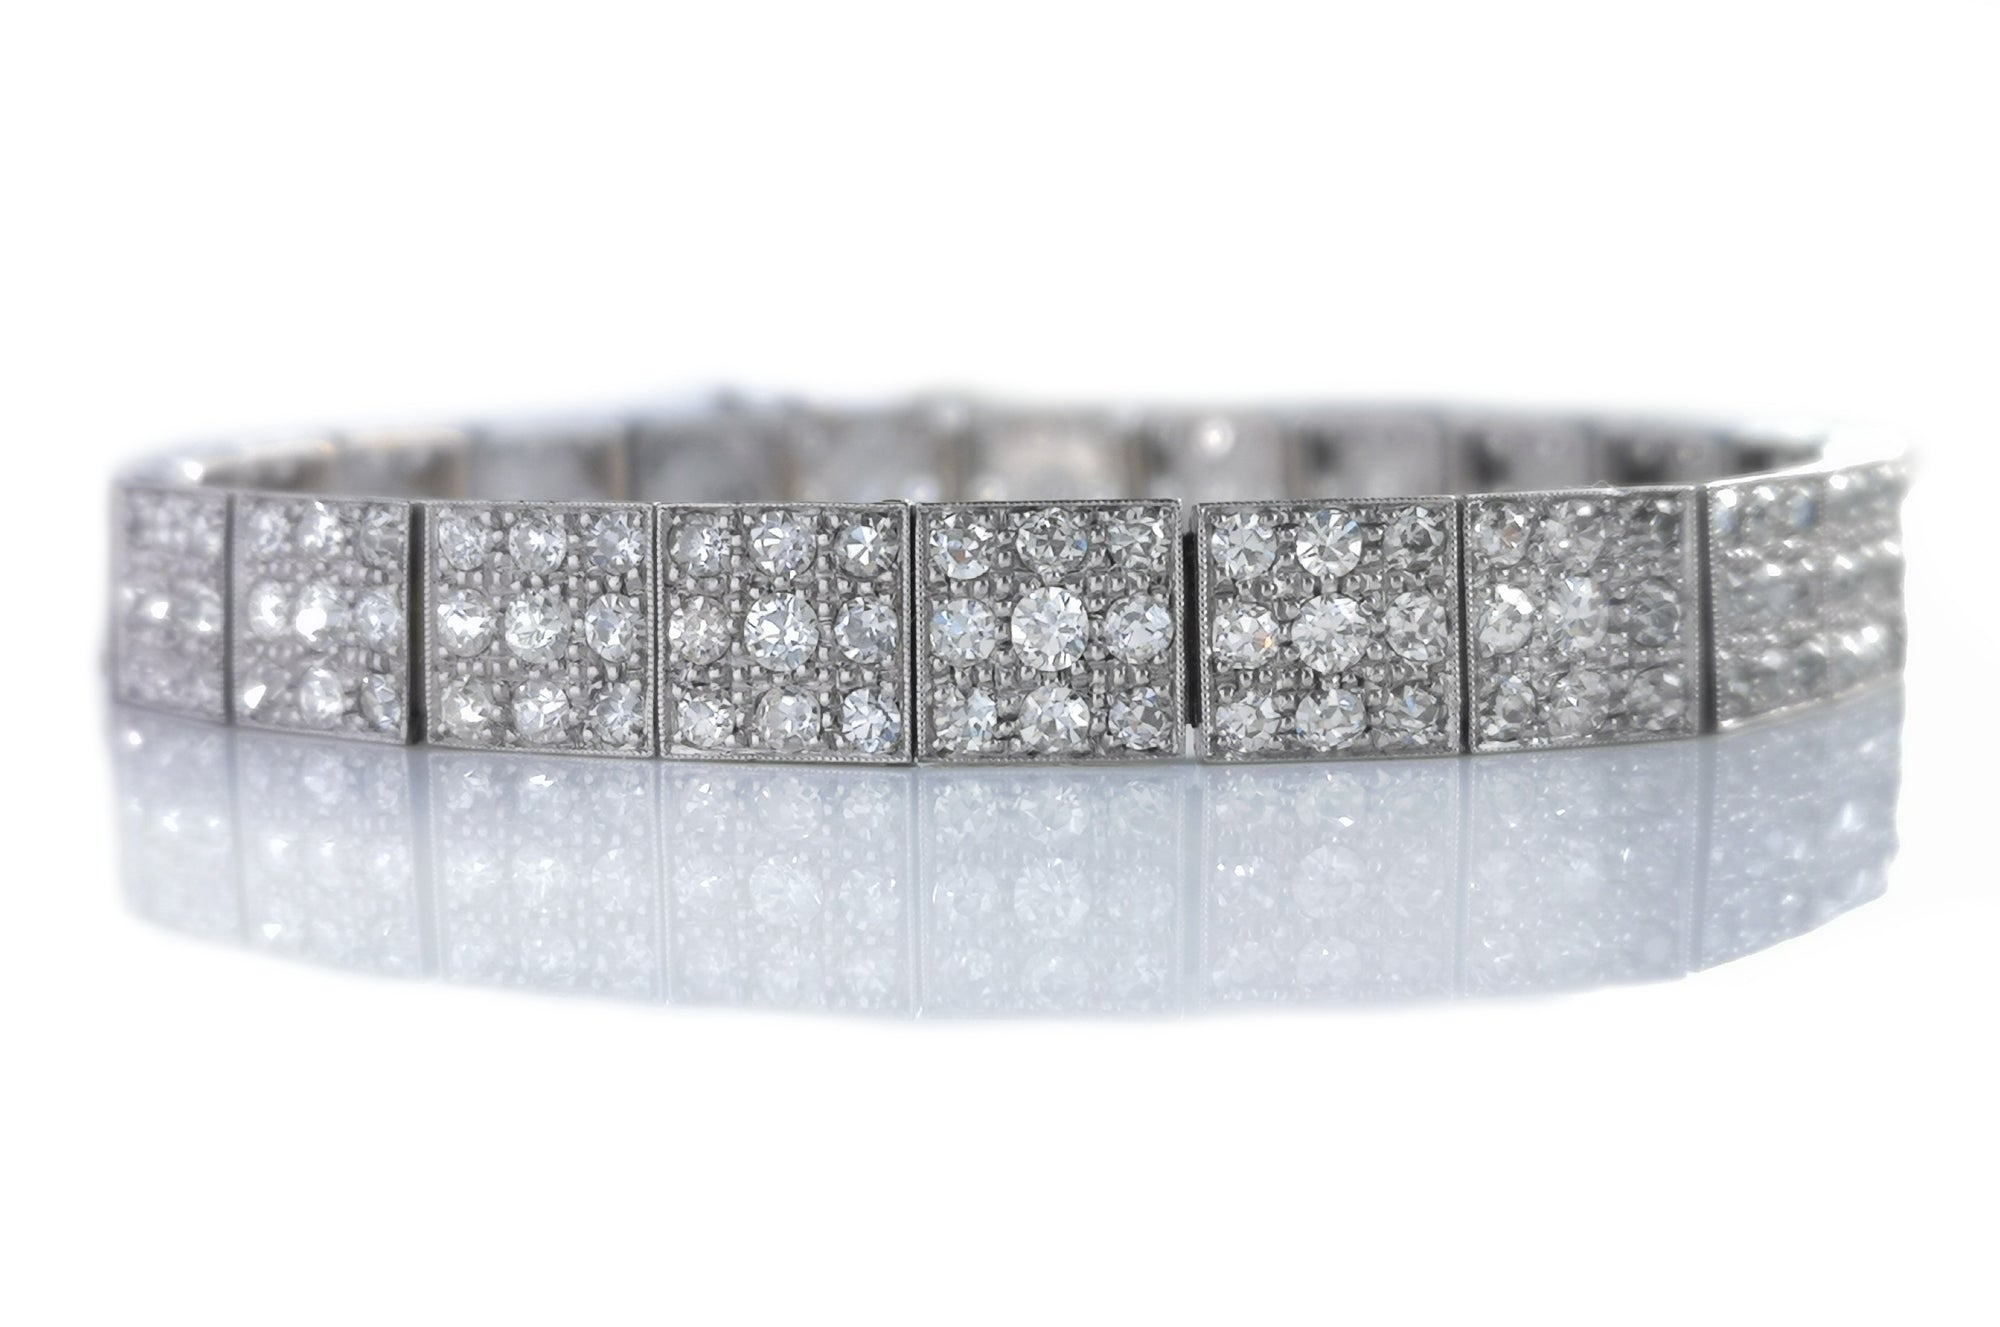 1920 Art Deco 5.17ct Old Cut Pave Diamond Set Bracelet